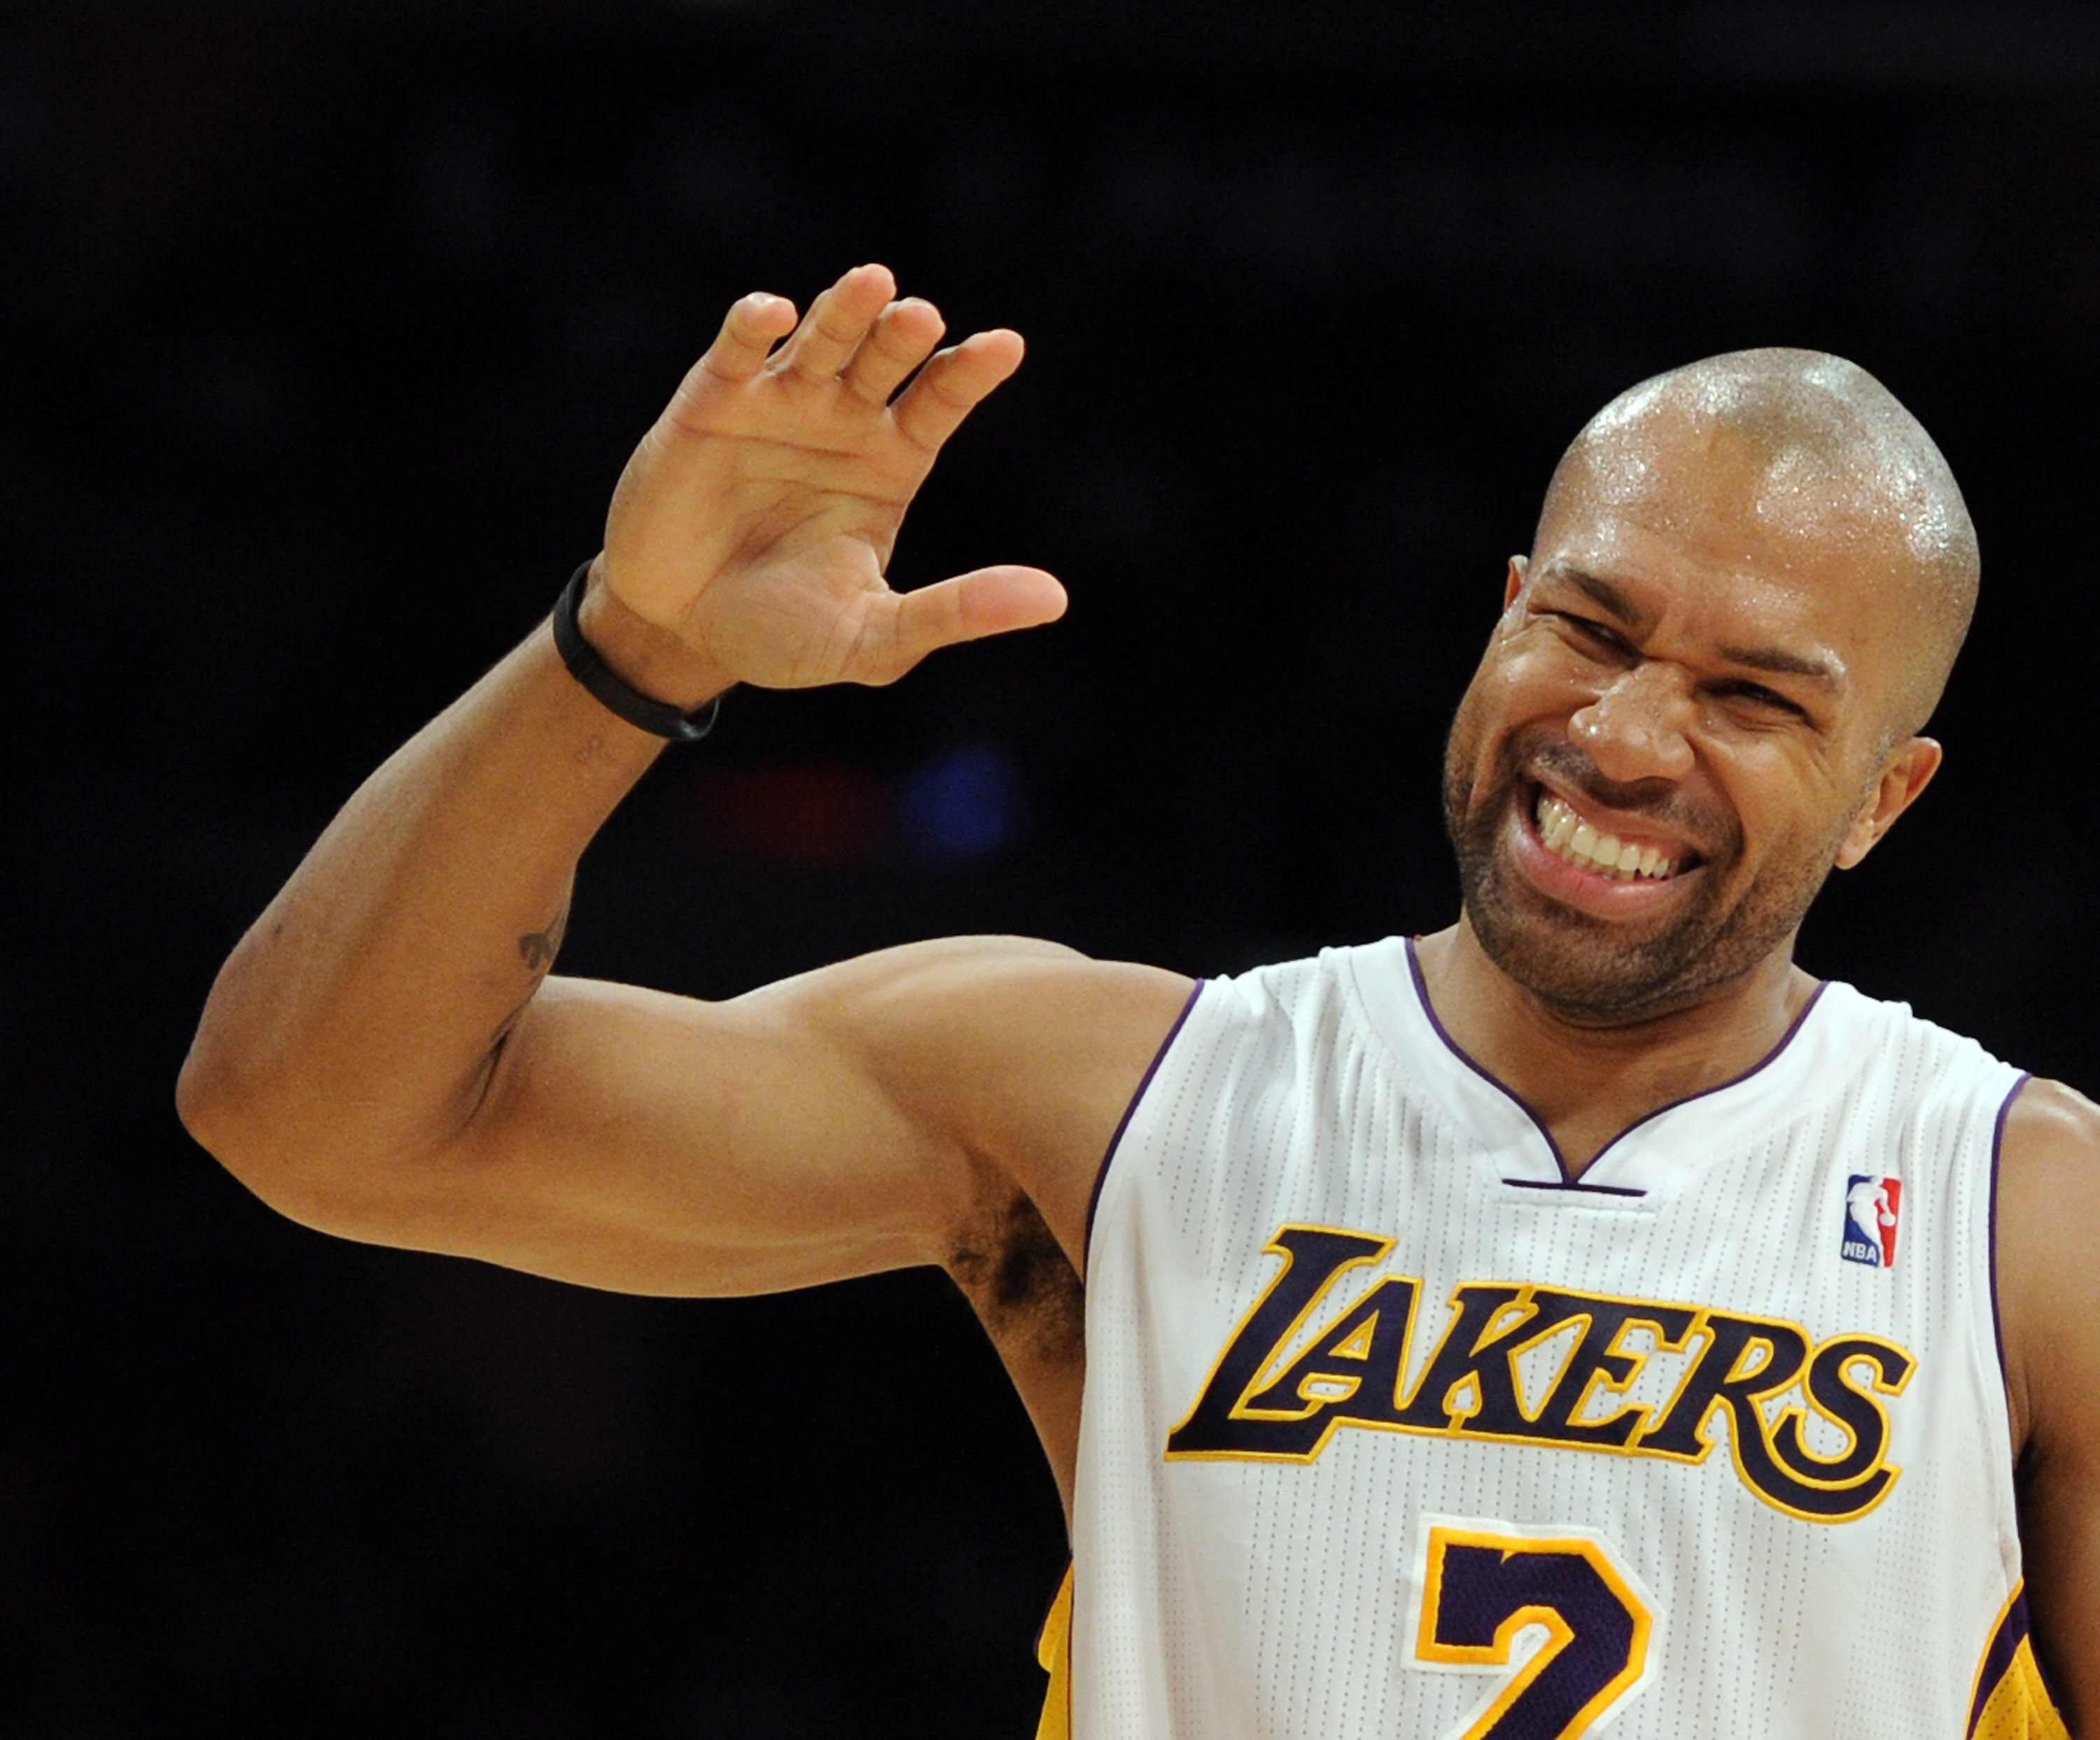 LOS ANGELES, CA - NOVEMBER 07:  Derek Fisher #2 of the Los Angeles Lakers reacts after being fouled against the Portland Trail Blazers during the first half at the Staples Center on November 7, 2010 in Los Angeles, California.  NOTE TO USER: User expressl